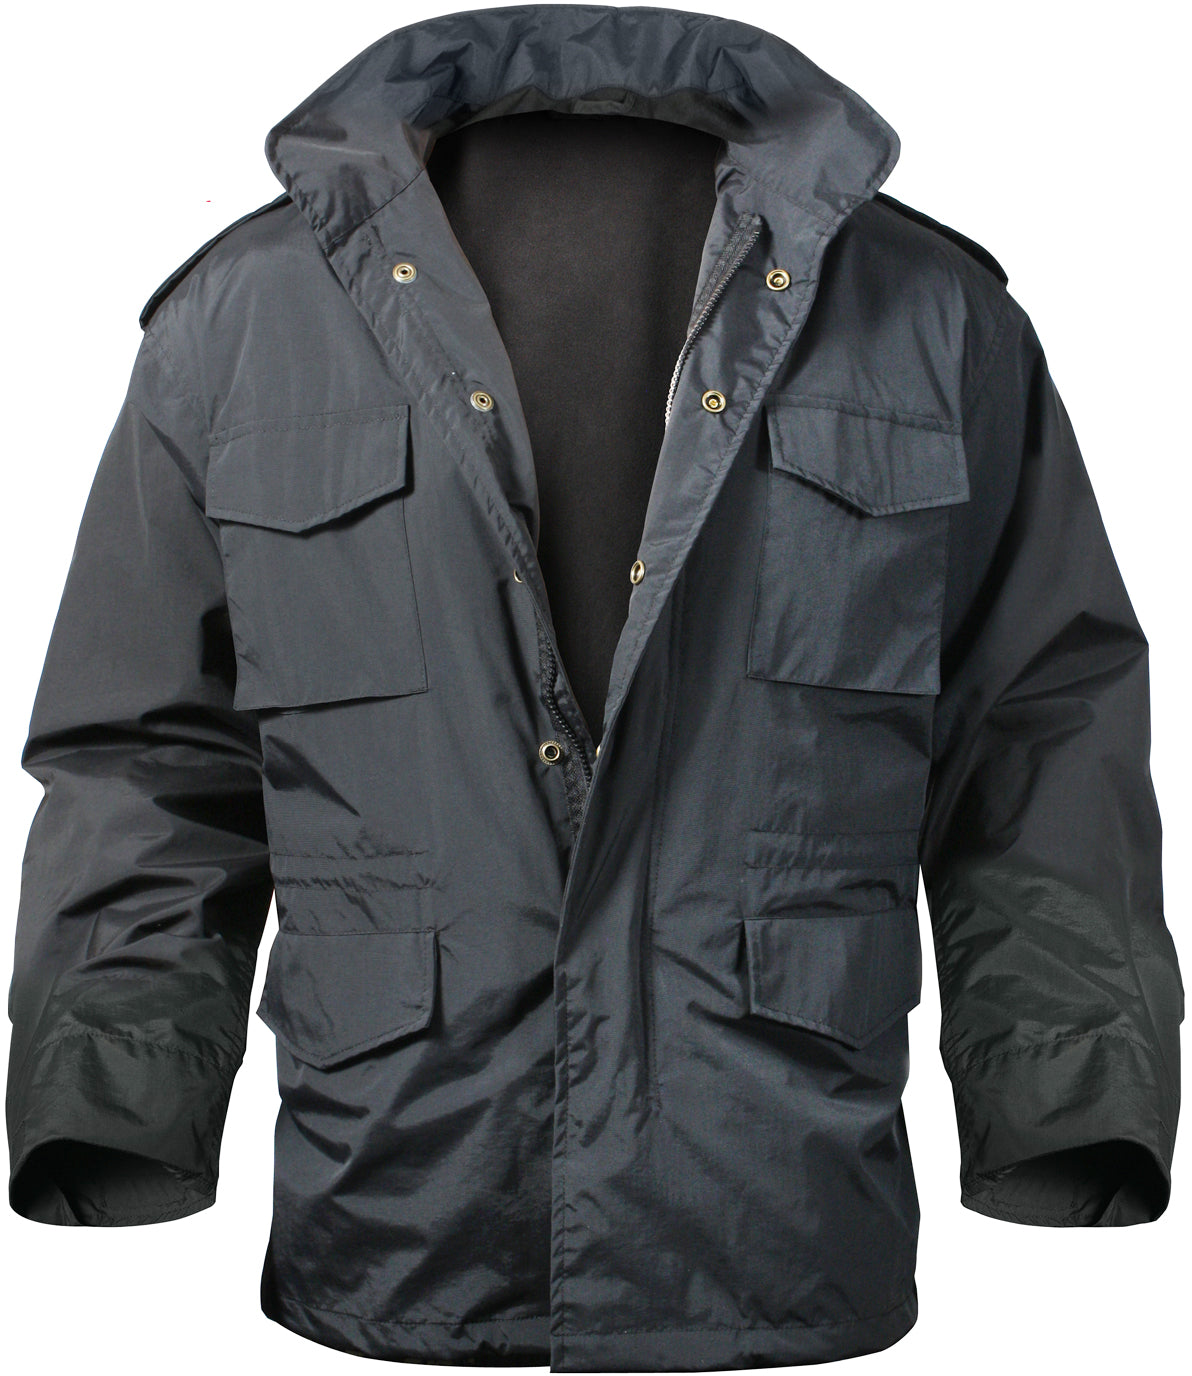 Black - Water Resistant M-65 Storm Jacket